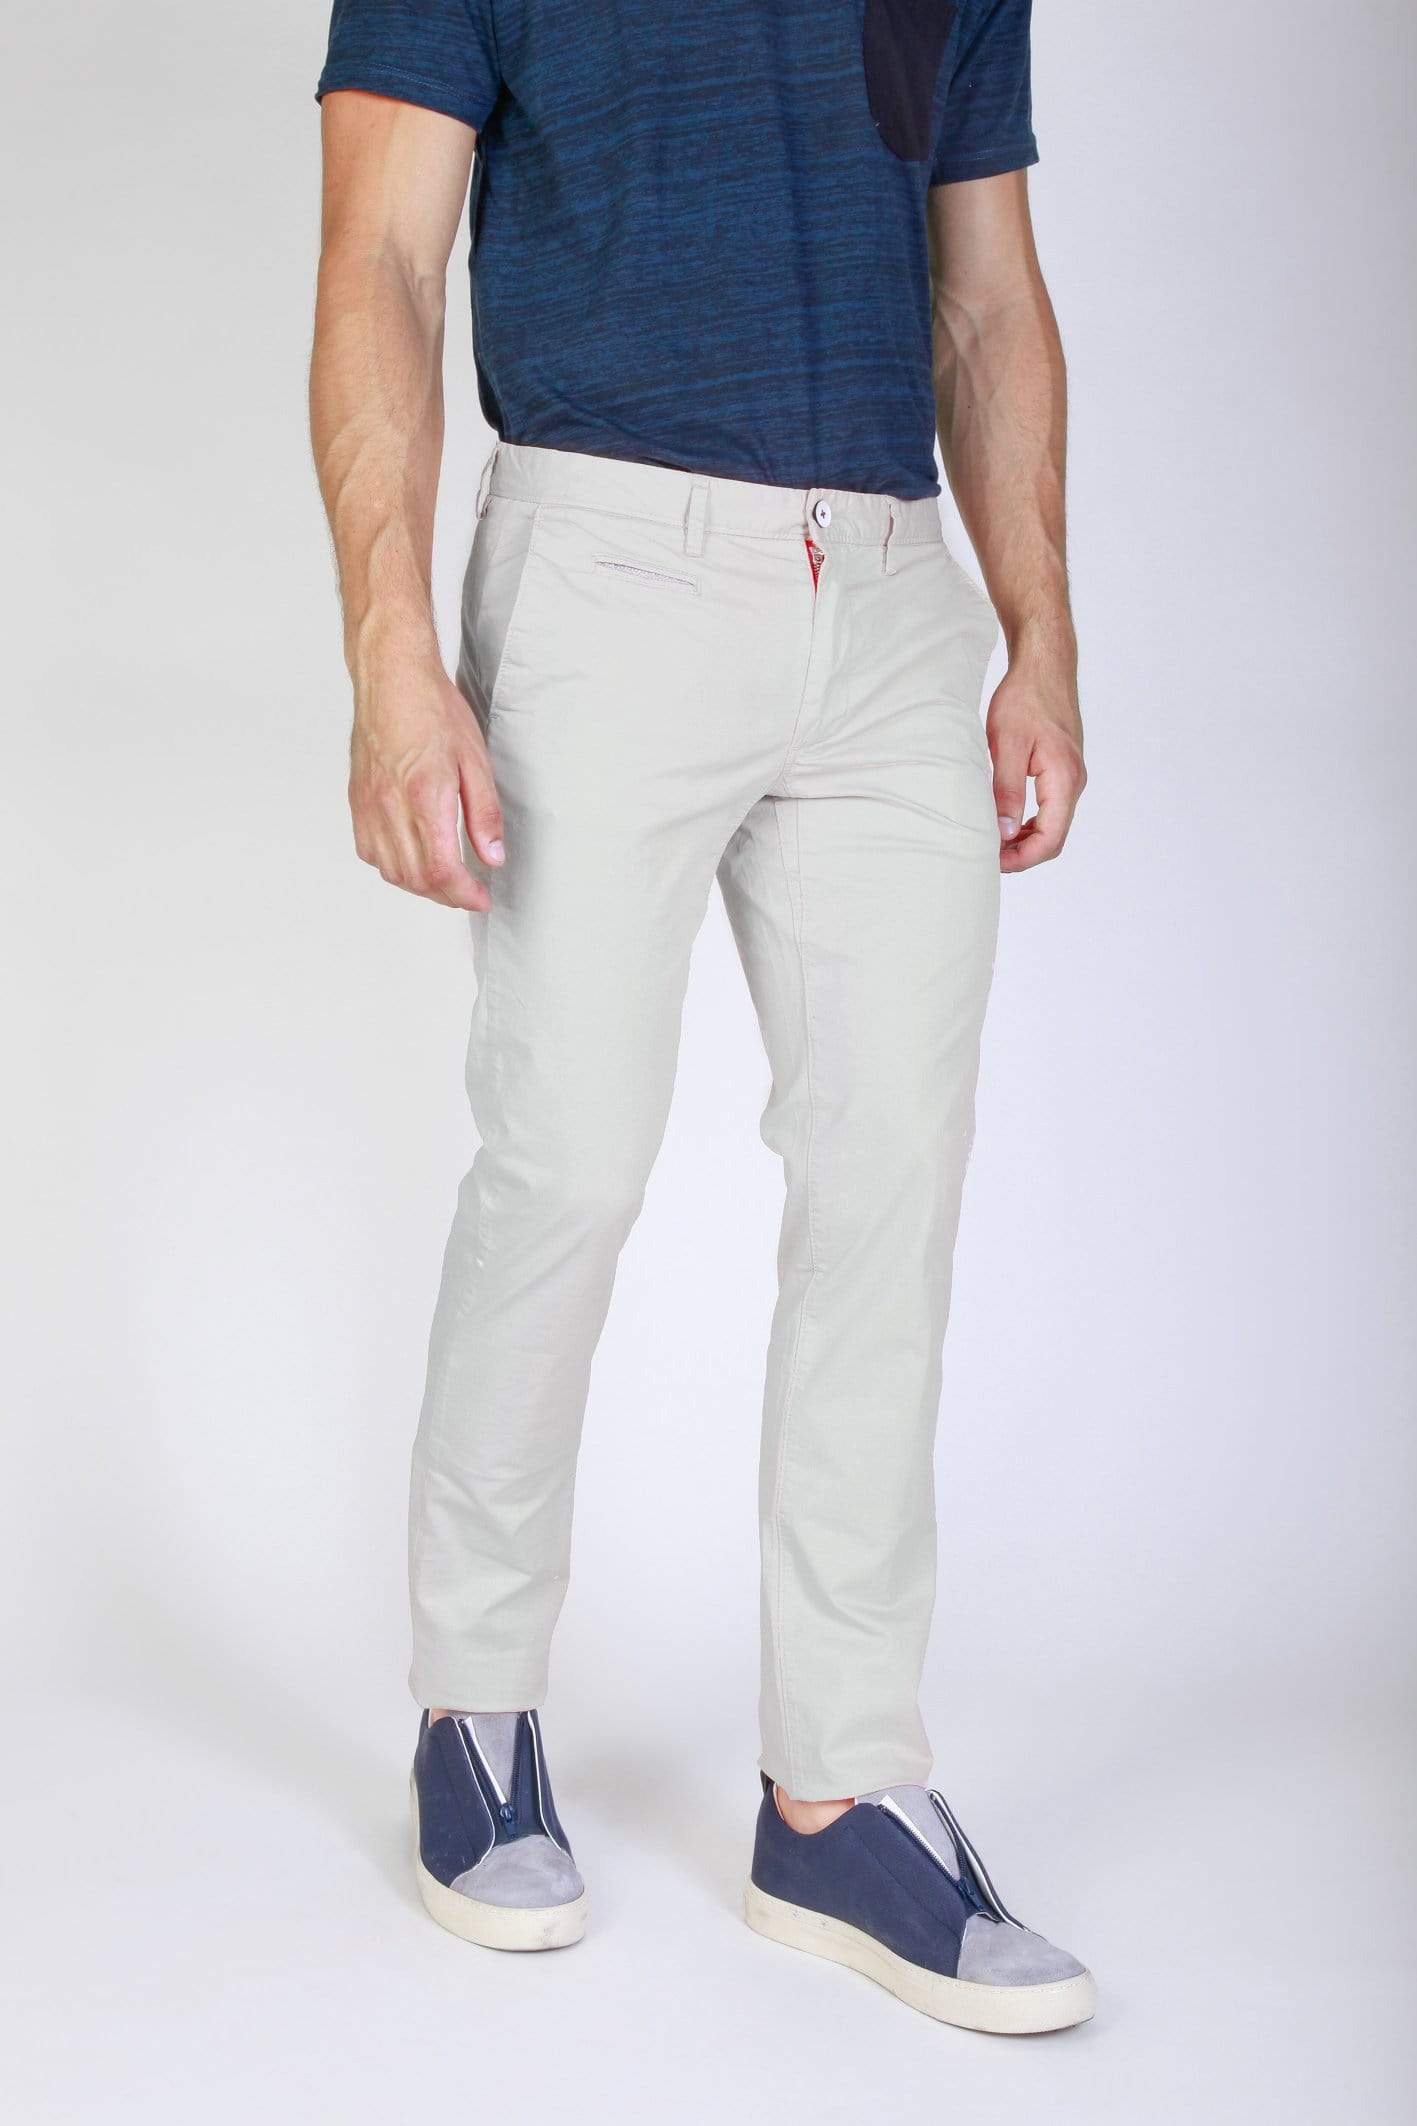 Jaggy Clothing Trousers white / 40 Jaggy - J1683T812-1M